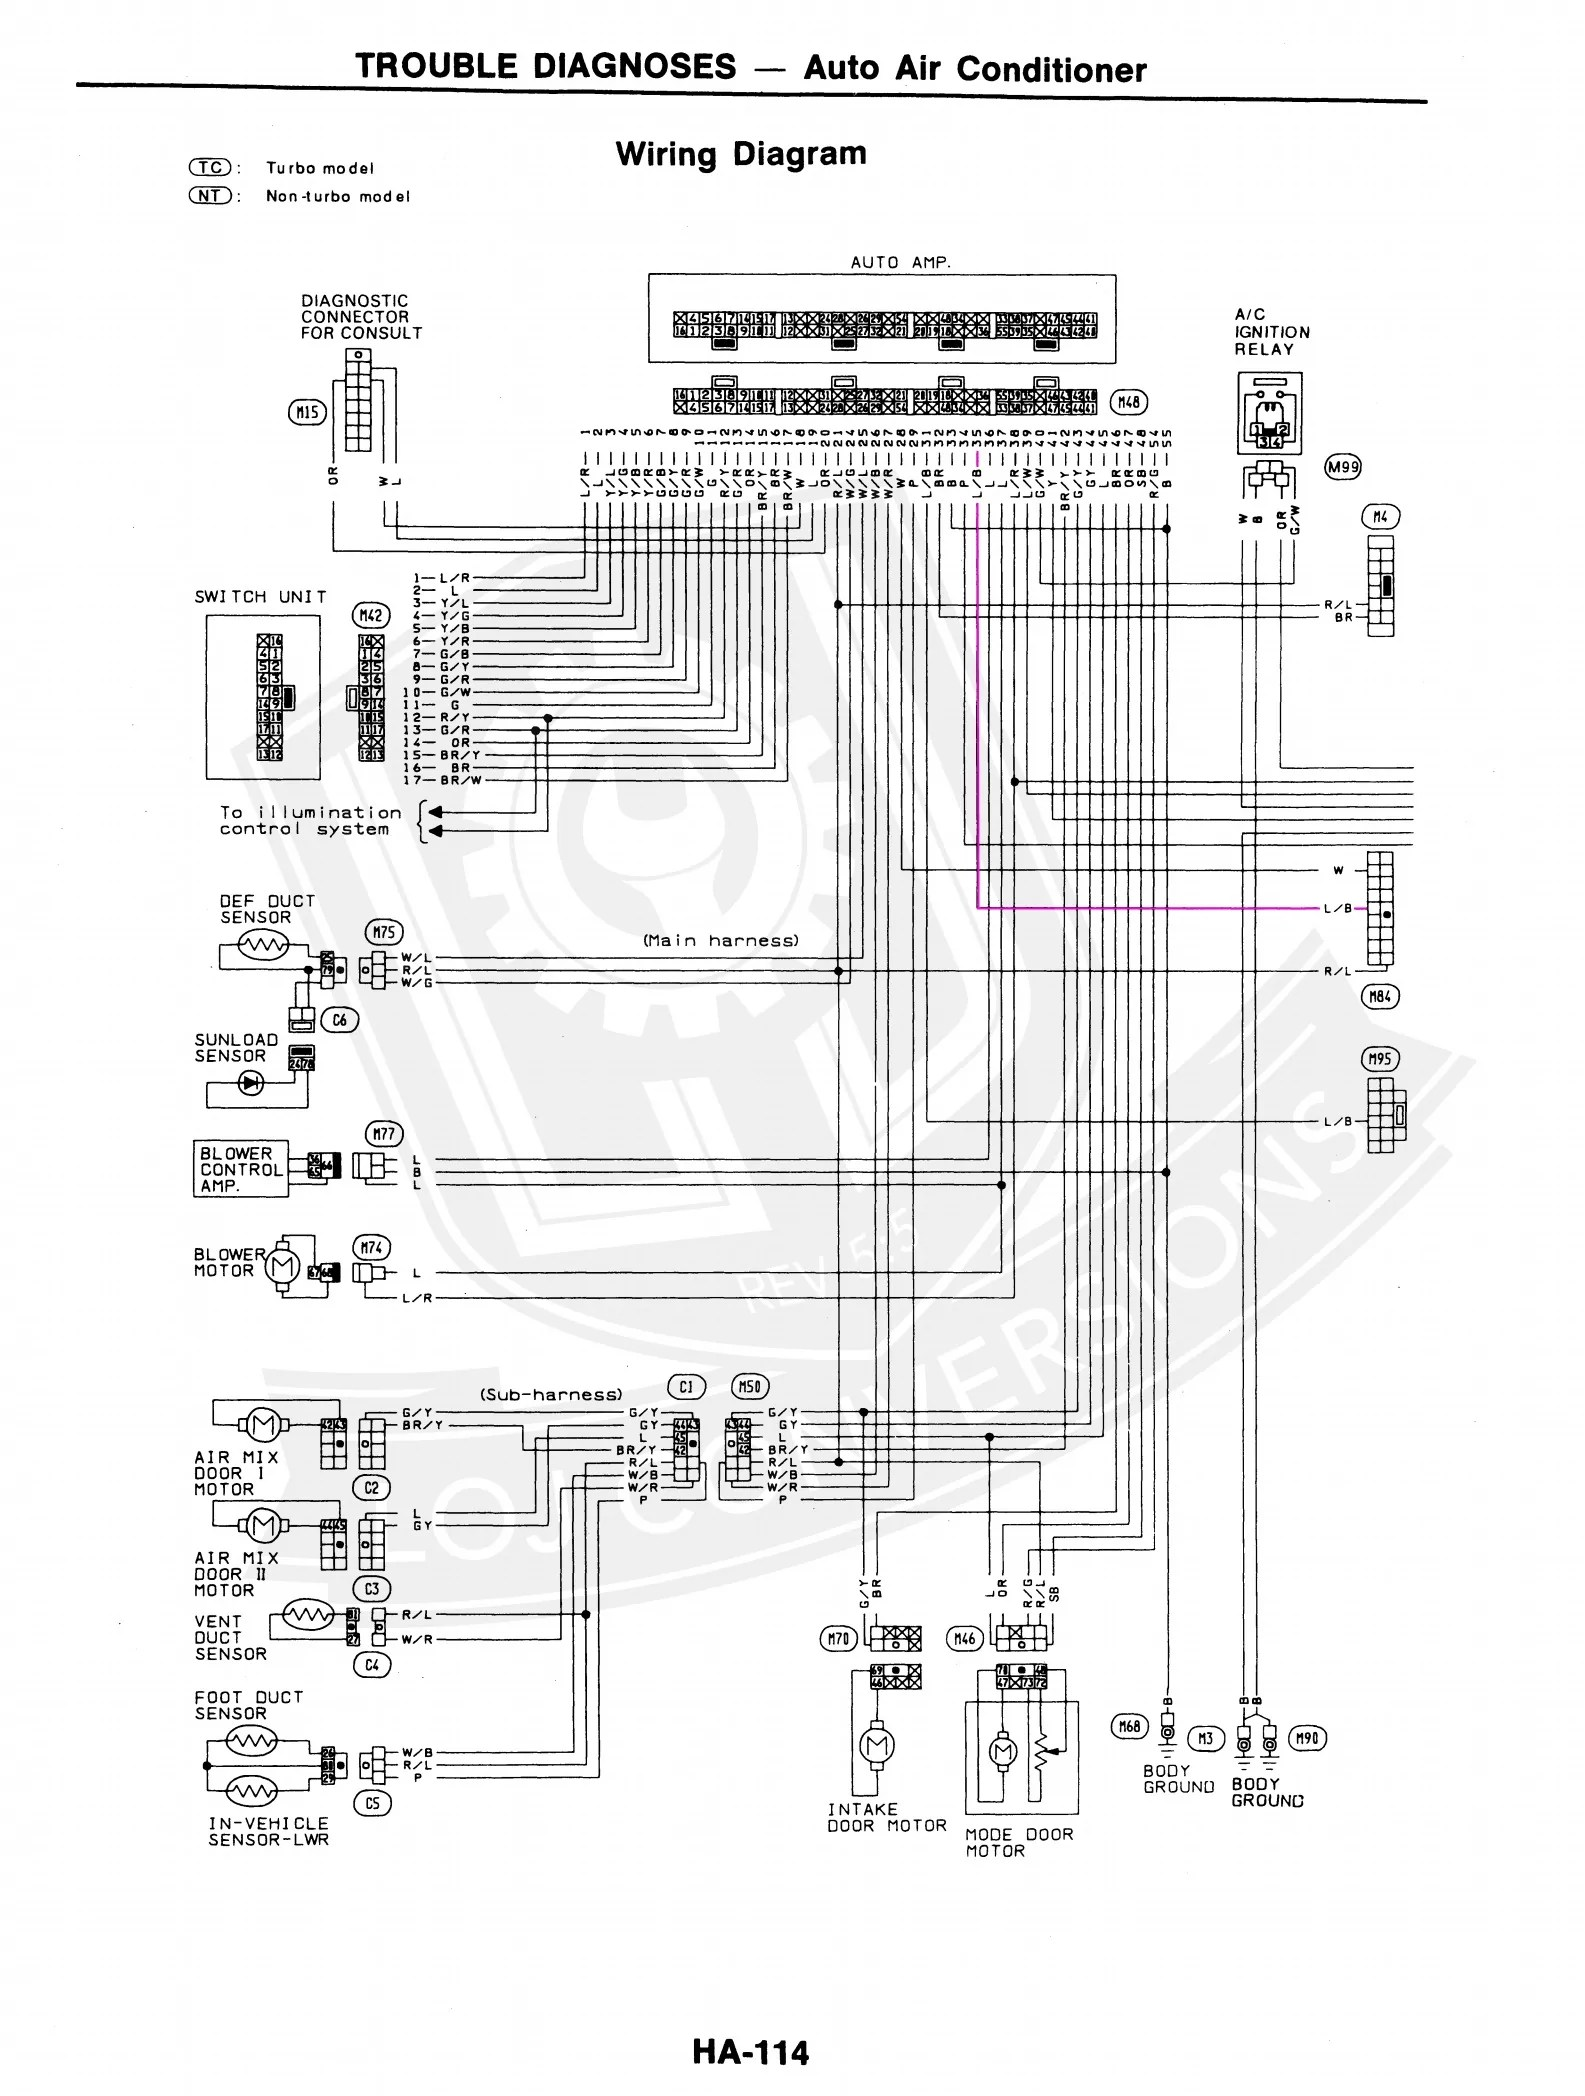 300zx ecu wiring harness diy my wiring diagram 300zx wiring harness diy [ 1585 x 2096 Pixel ]